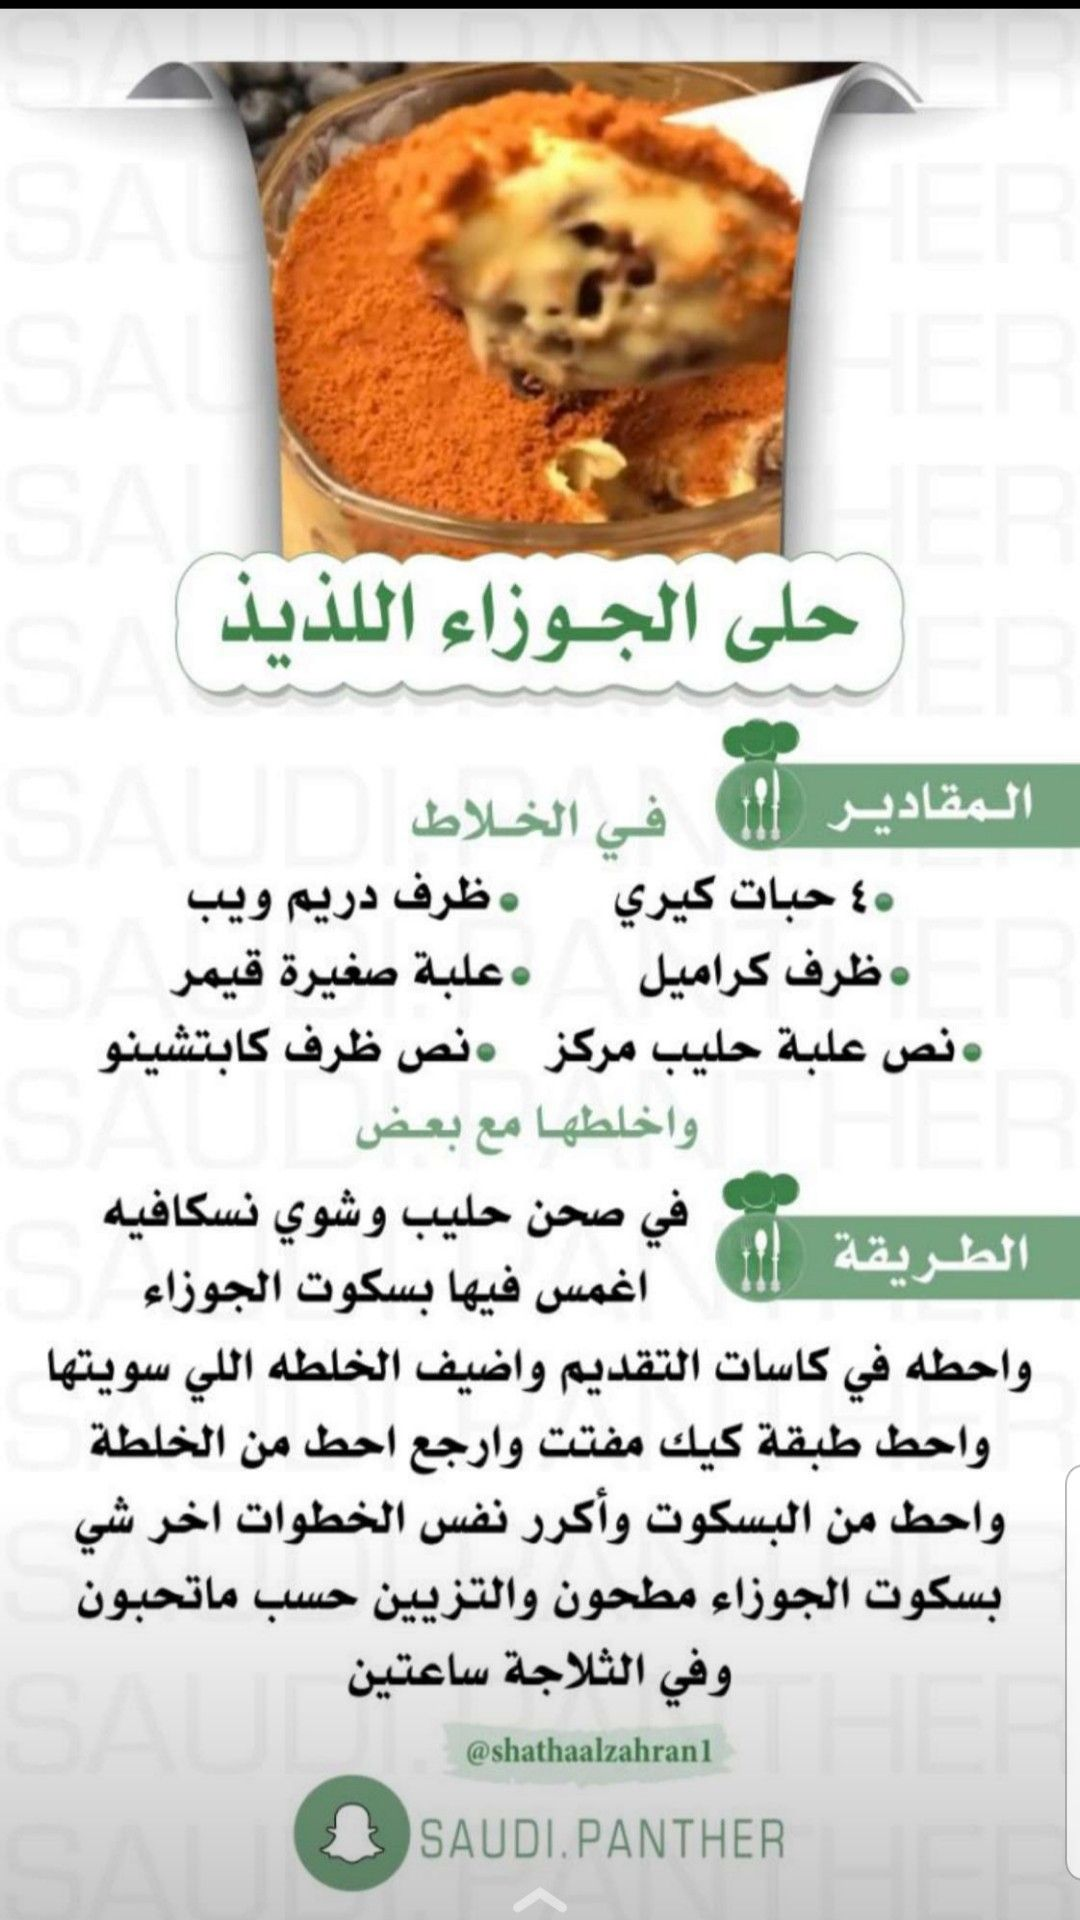 Pin By Hnoreen On Food طبخ Arabic Food Cooking Food